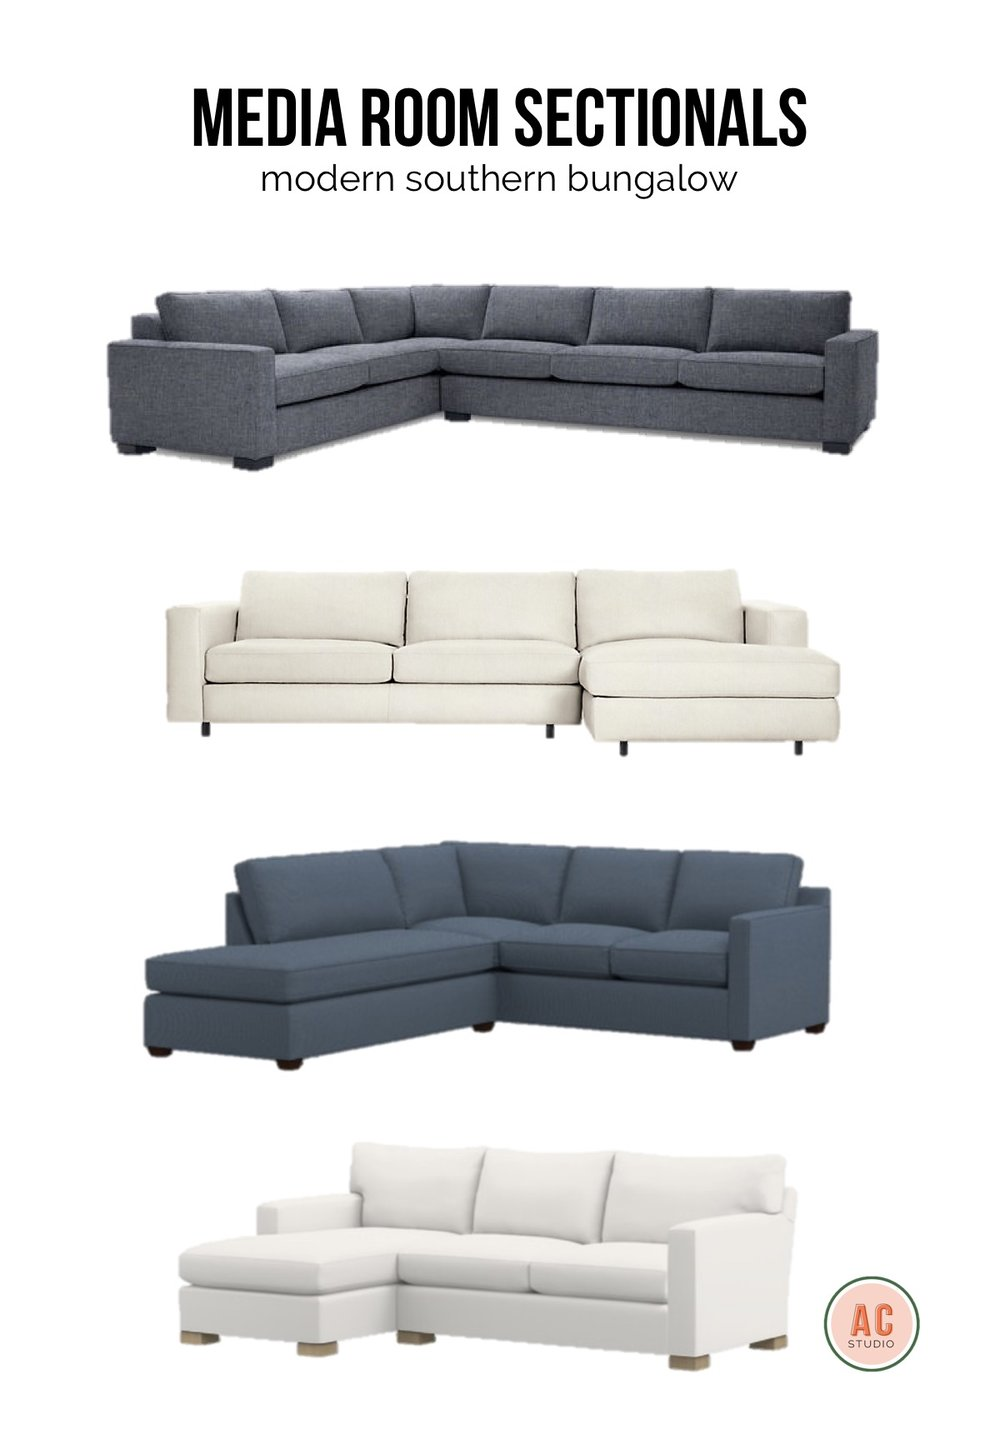 Carson Sectional  /  Reid Sectional  /  Davis Sectional  /  Axis II Sectional